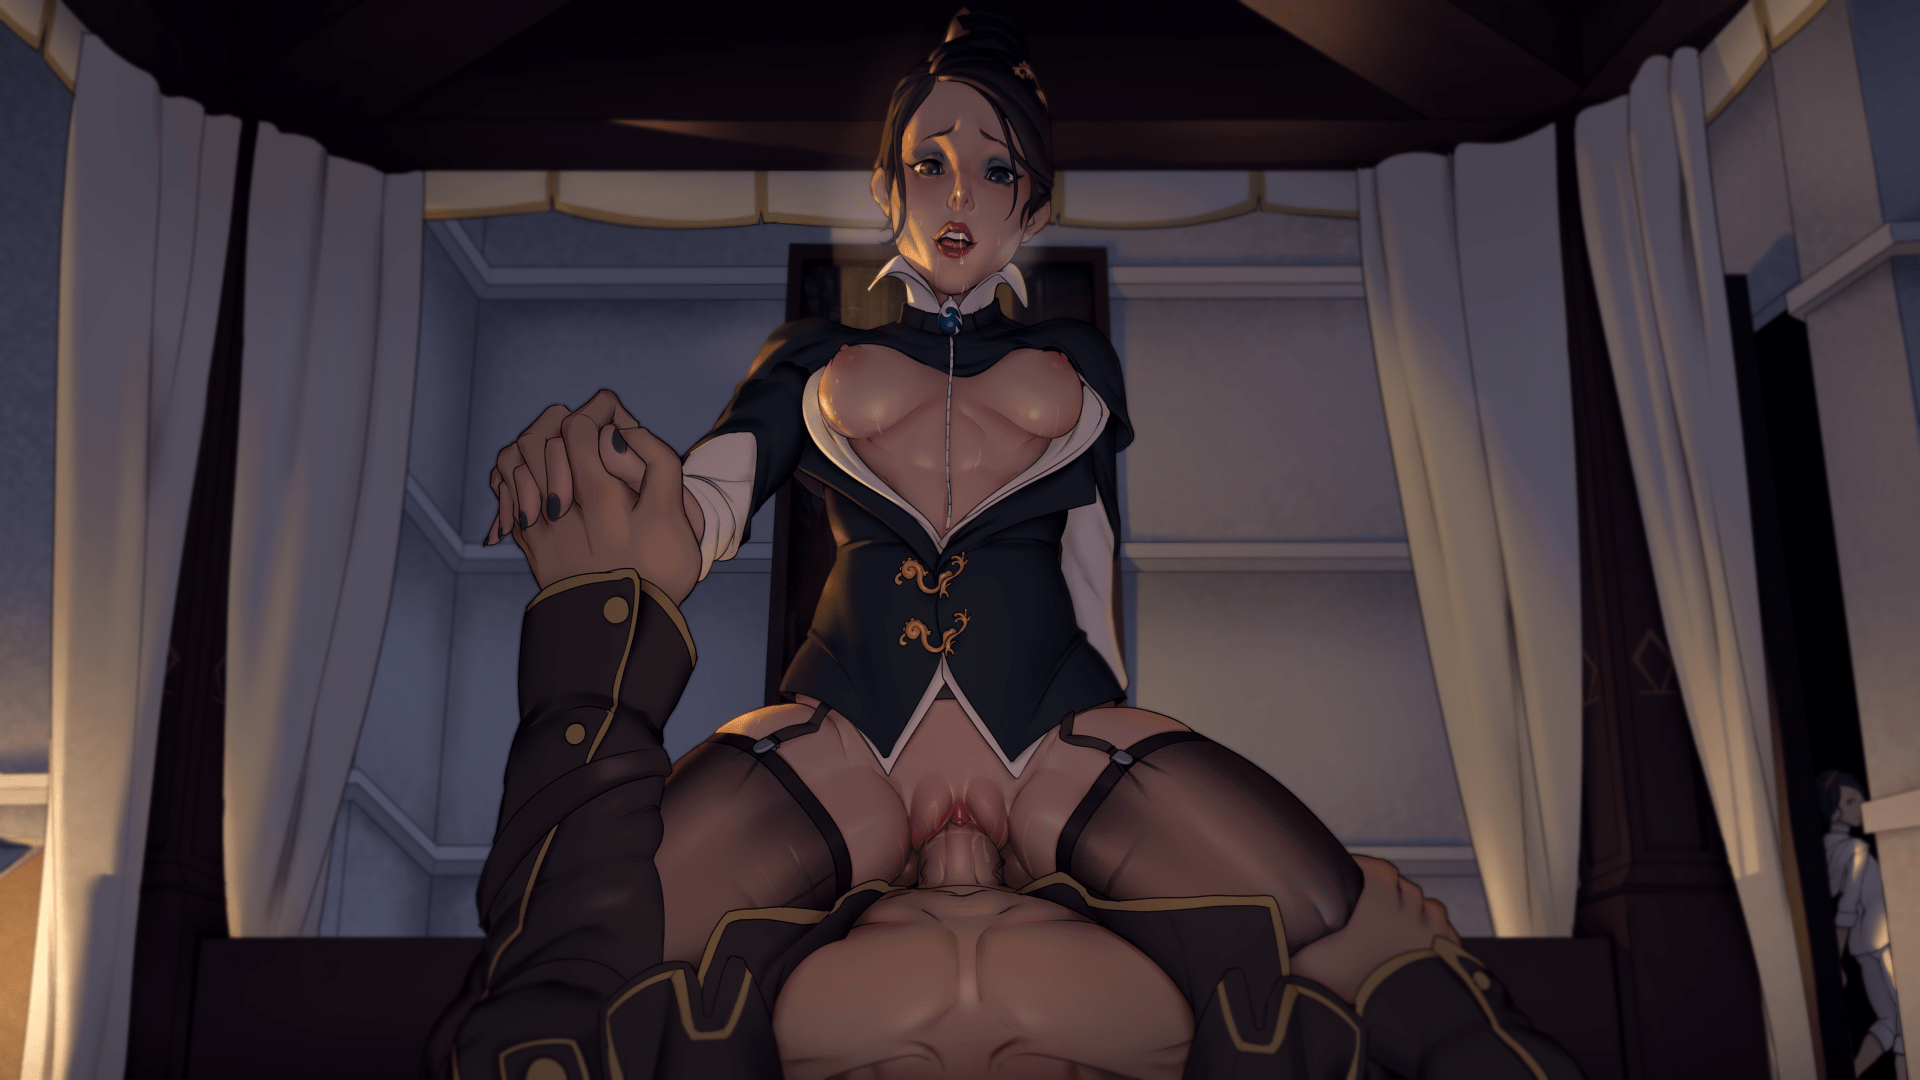 dishonored 2 porn